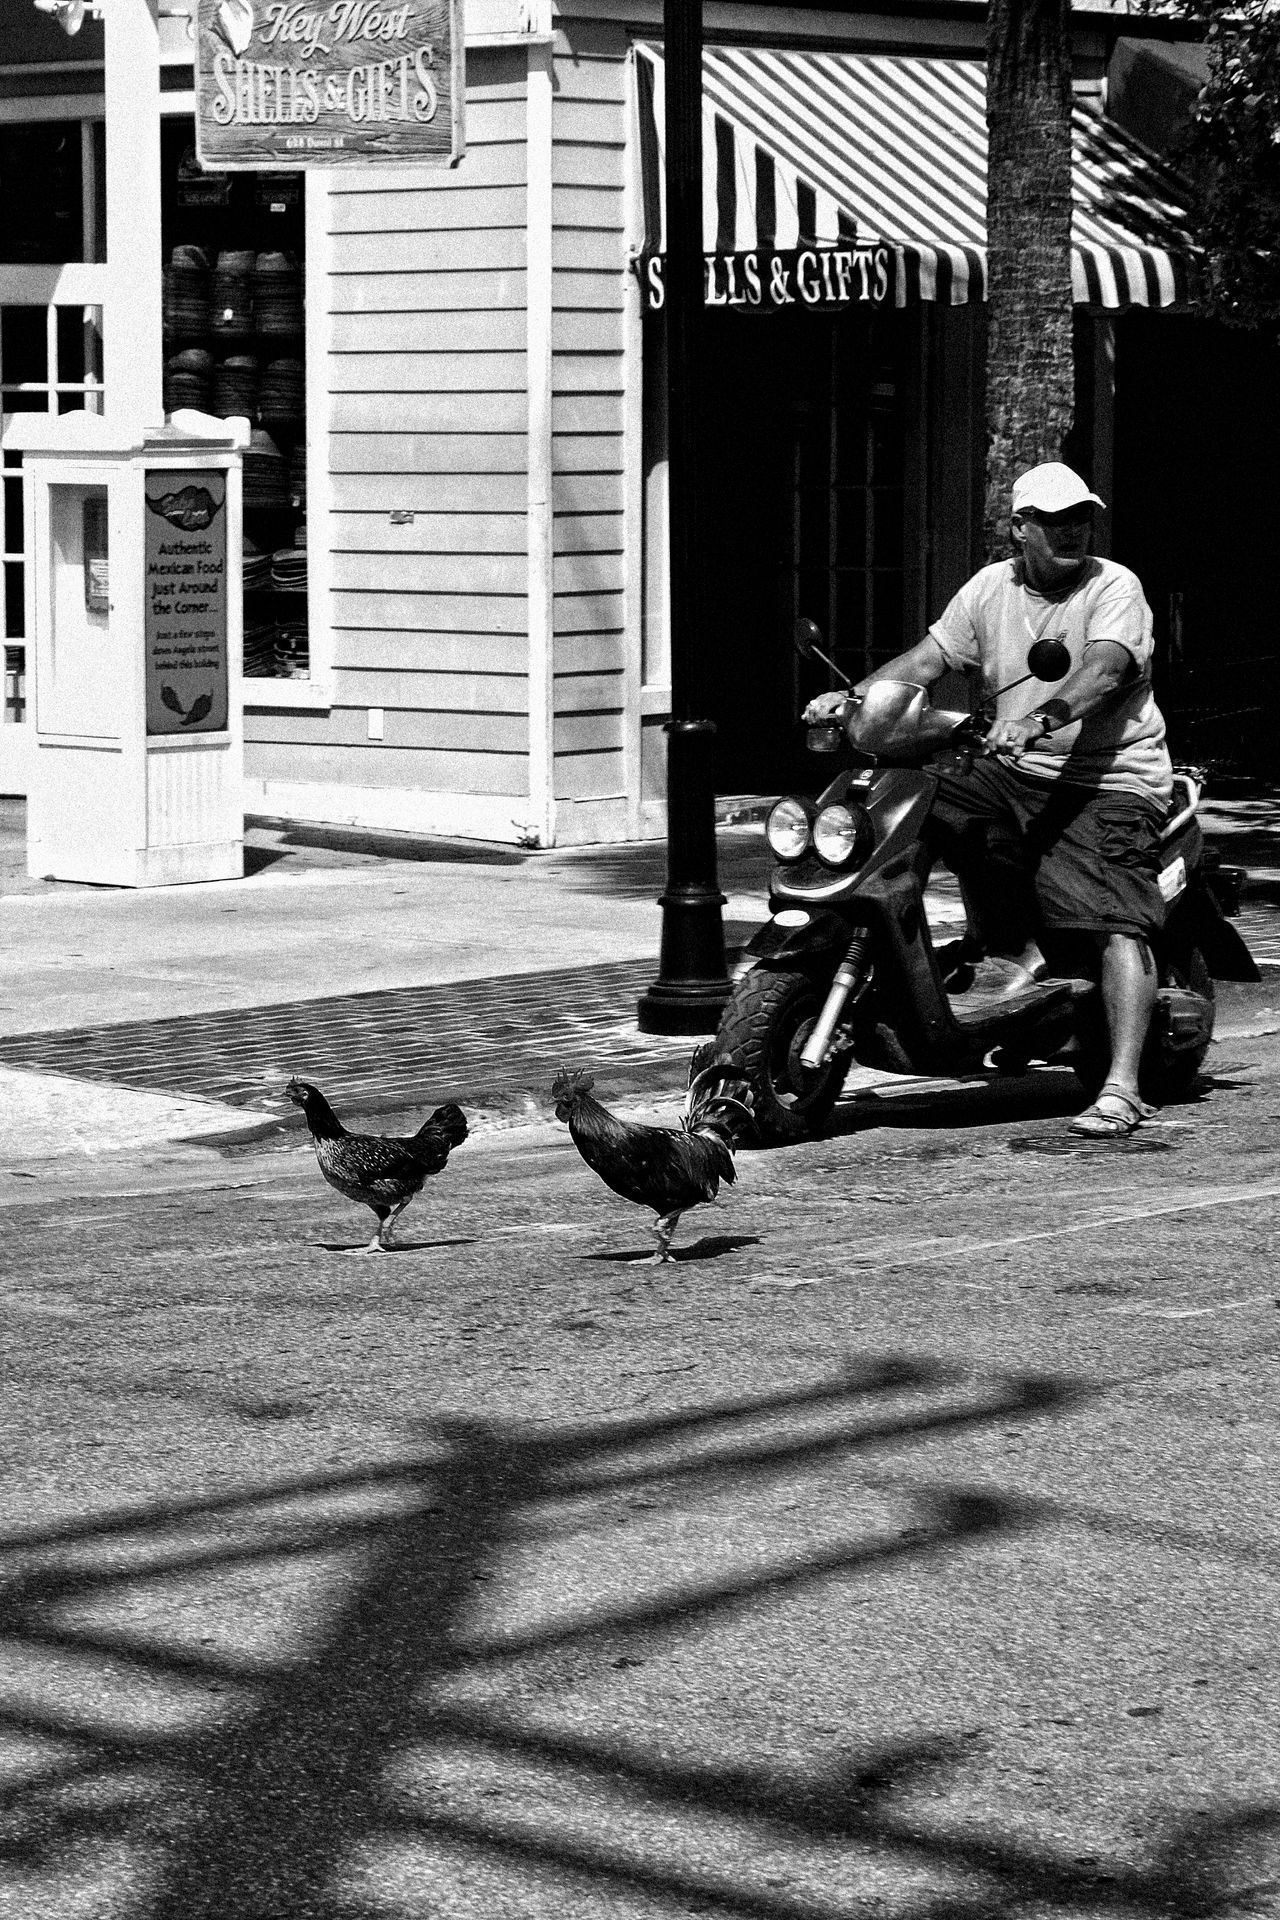 Black And White Chickens Adapted in the City Day Florida Life Men Outdoors Scooter Shadows